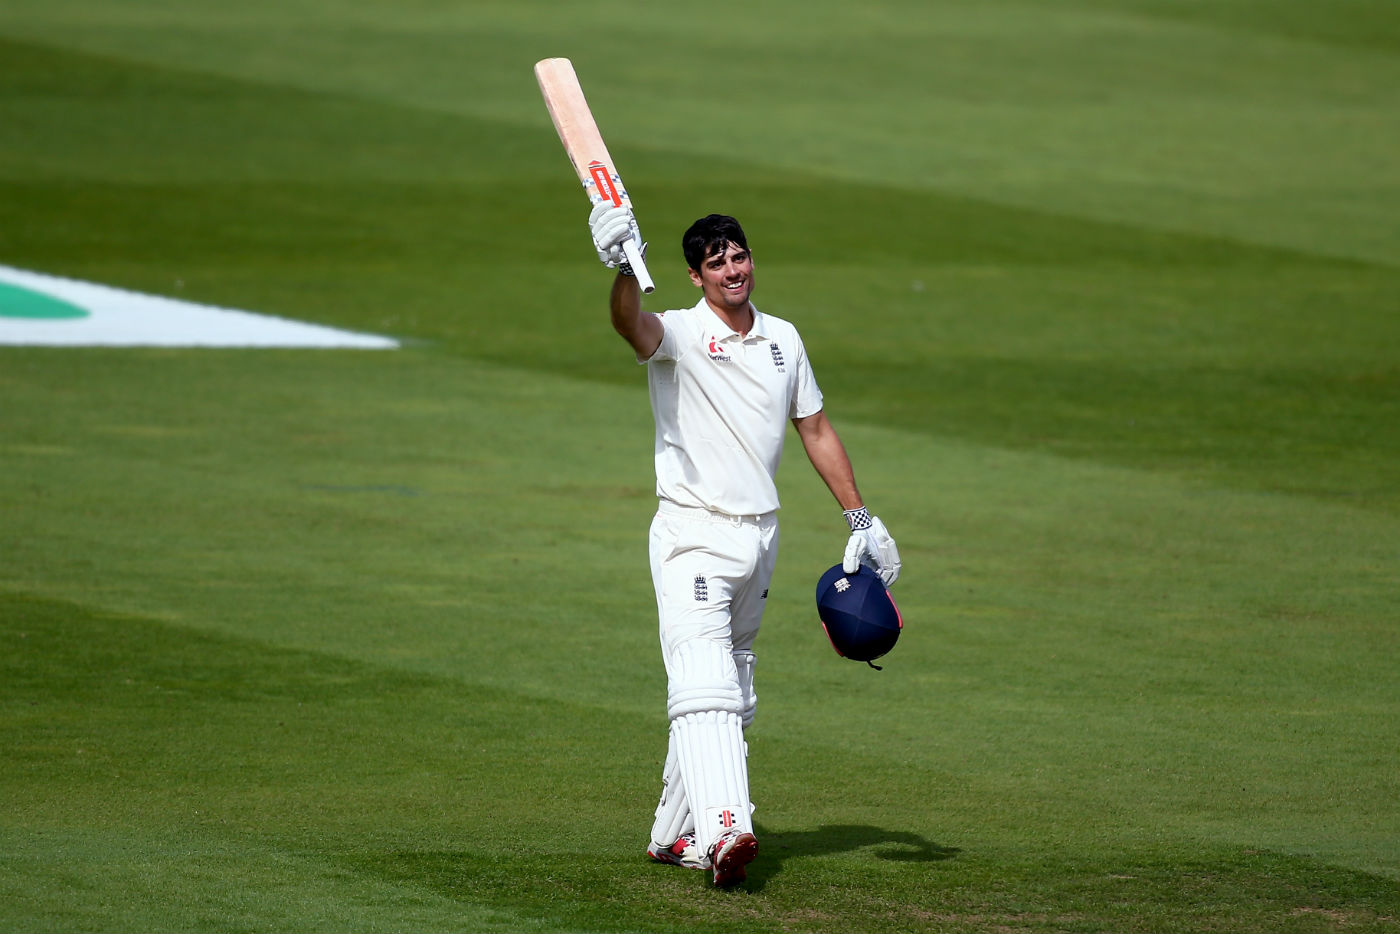 ENG vs IND 2018: Sometimes Dreams Come True, Says Alastair Cook After Scoring Farewell Ton